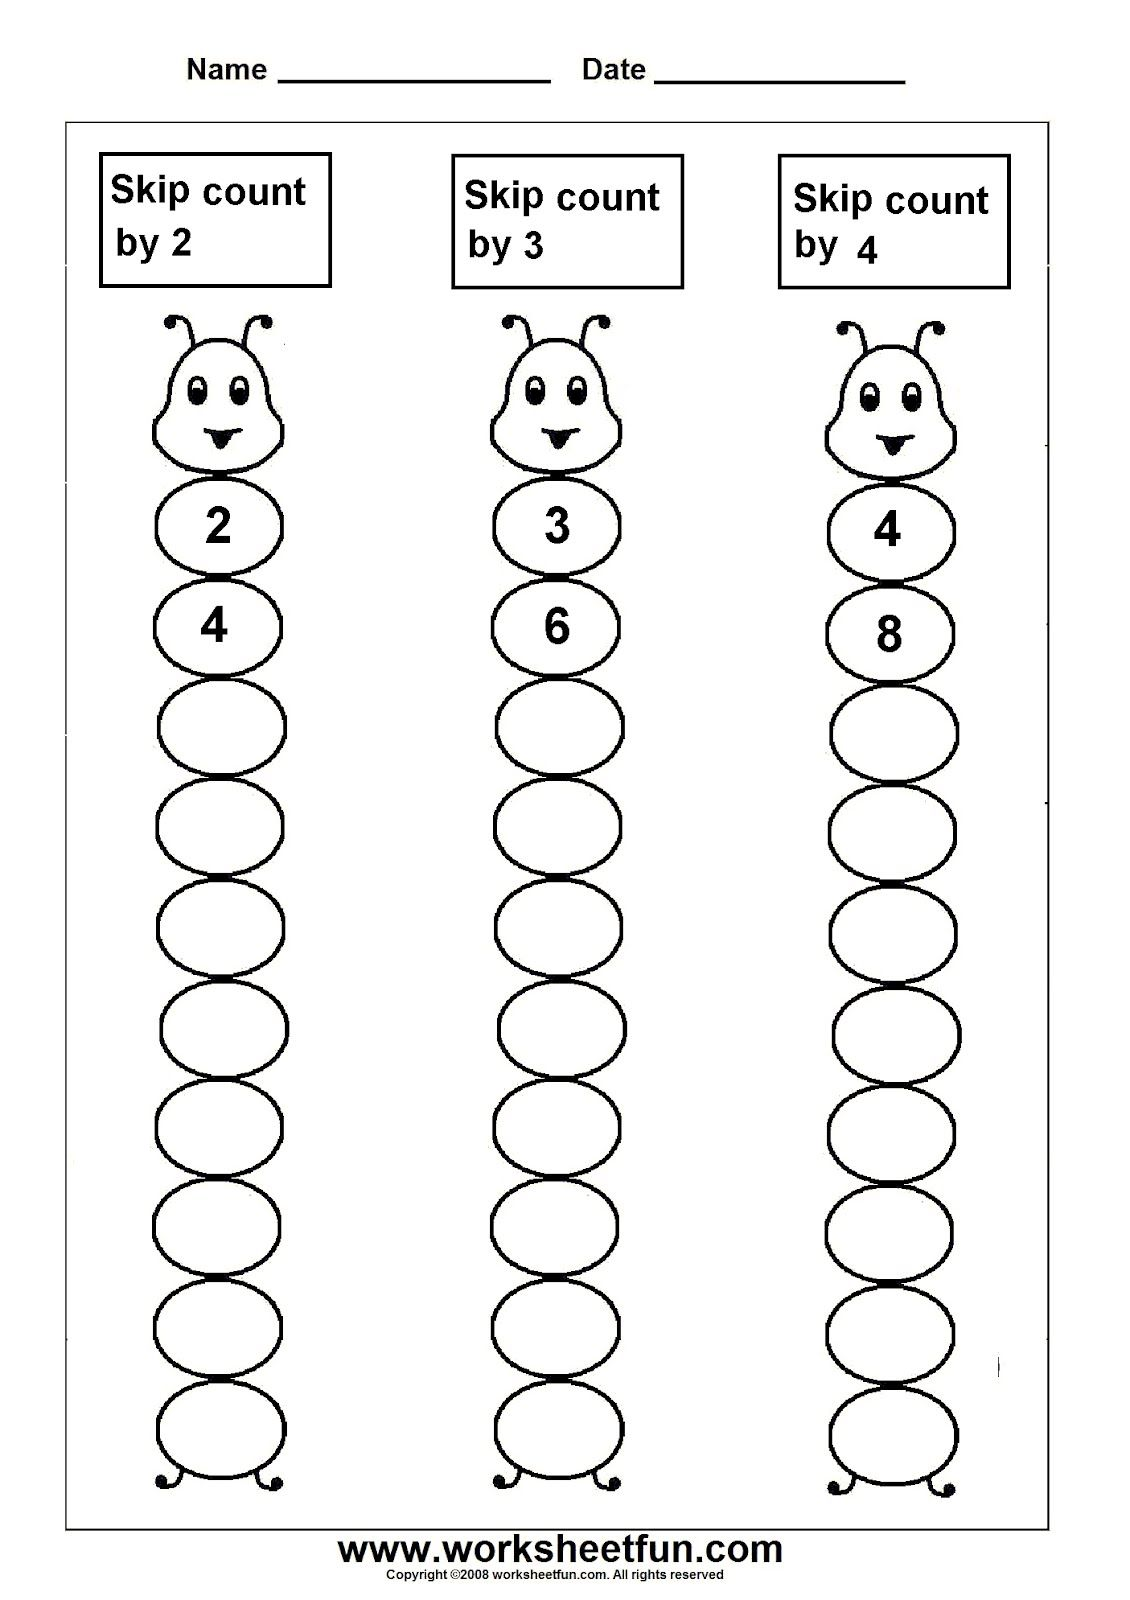 Worksheet Maths Worksheets Year 1 1000 images about maths on pinterest addition worksheets skip counting and year 1 worksheets